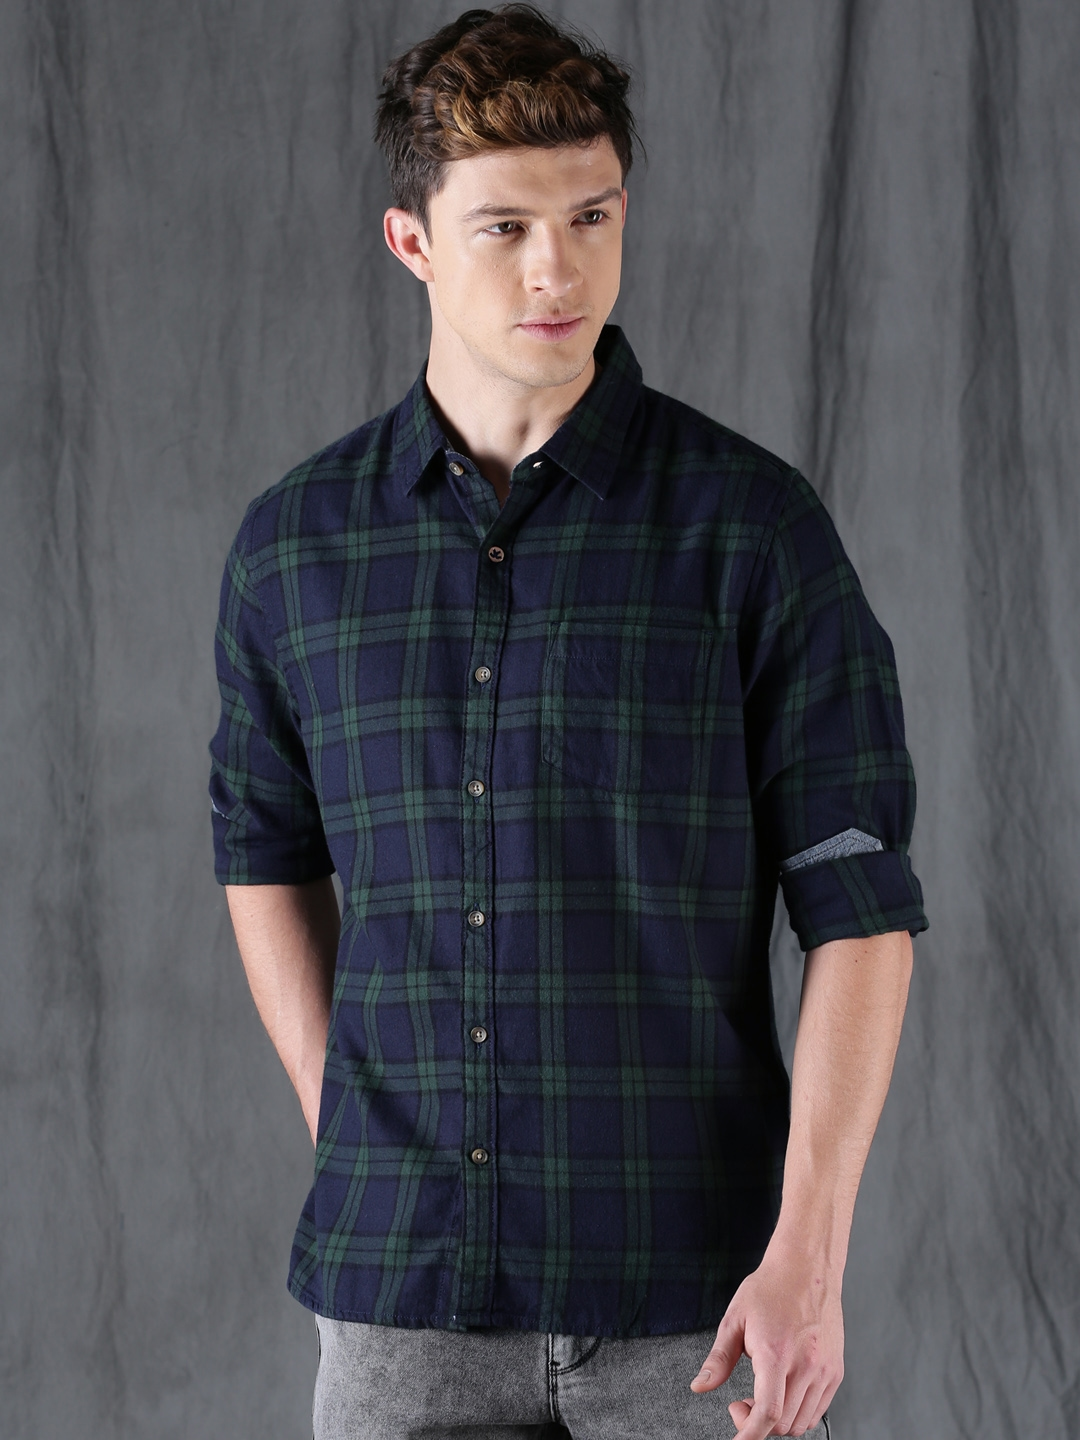 510958b01d8 Buy WROGN Men Navy Blue   Green Slim Fit Checked Casual Shirt ...